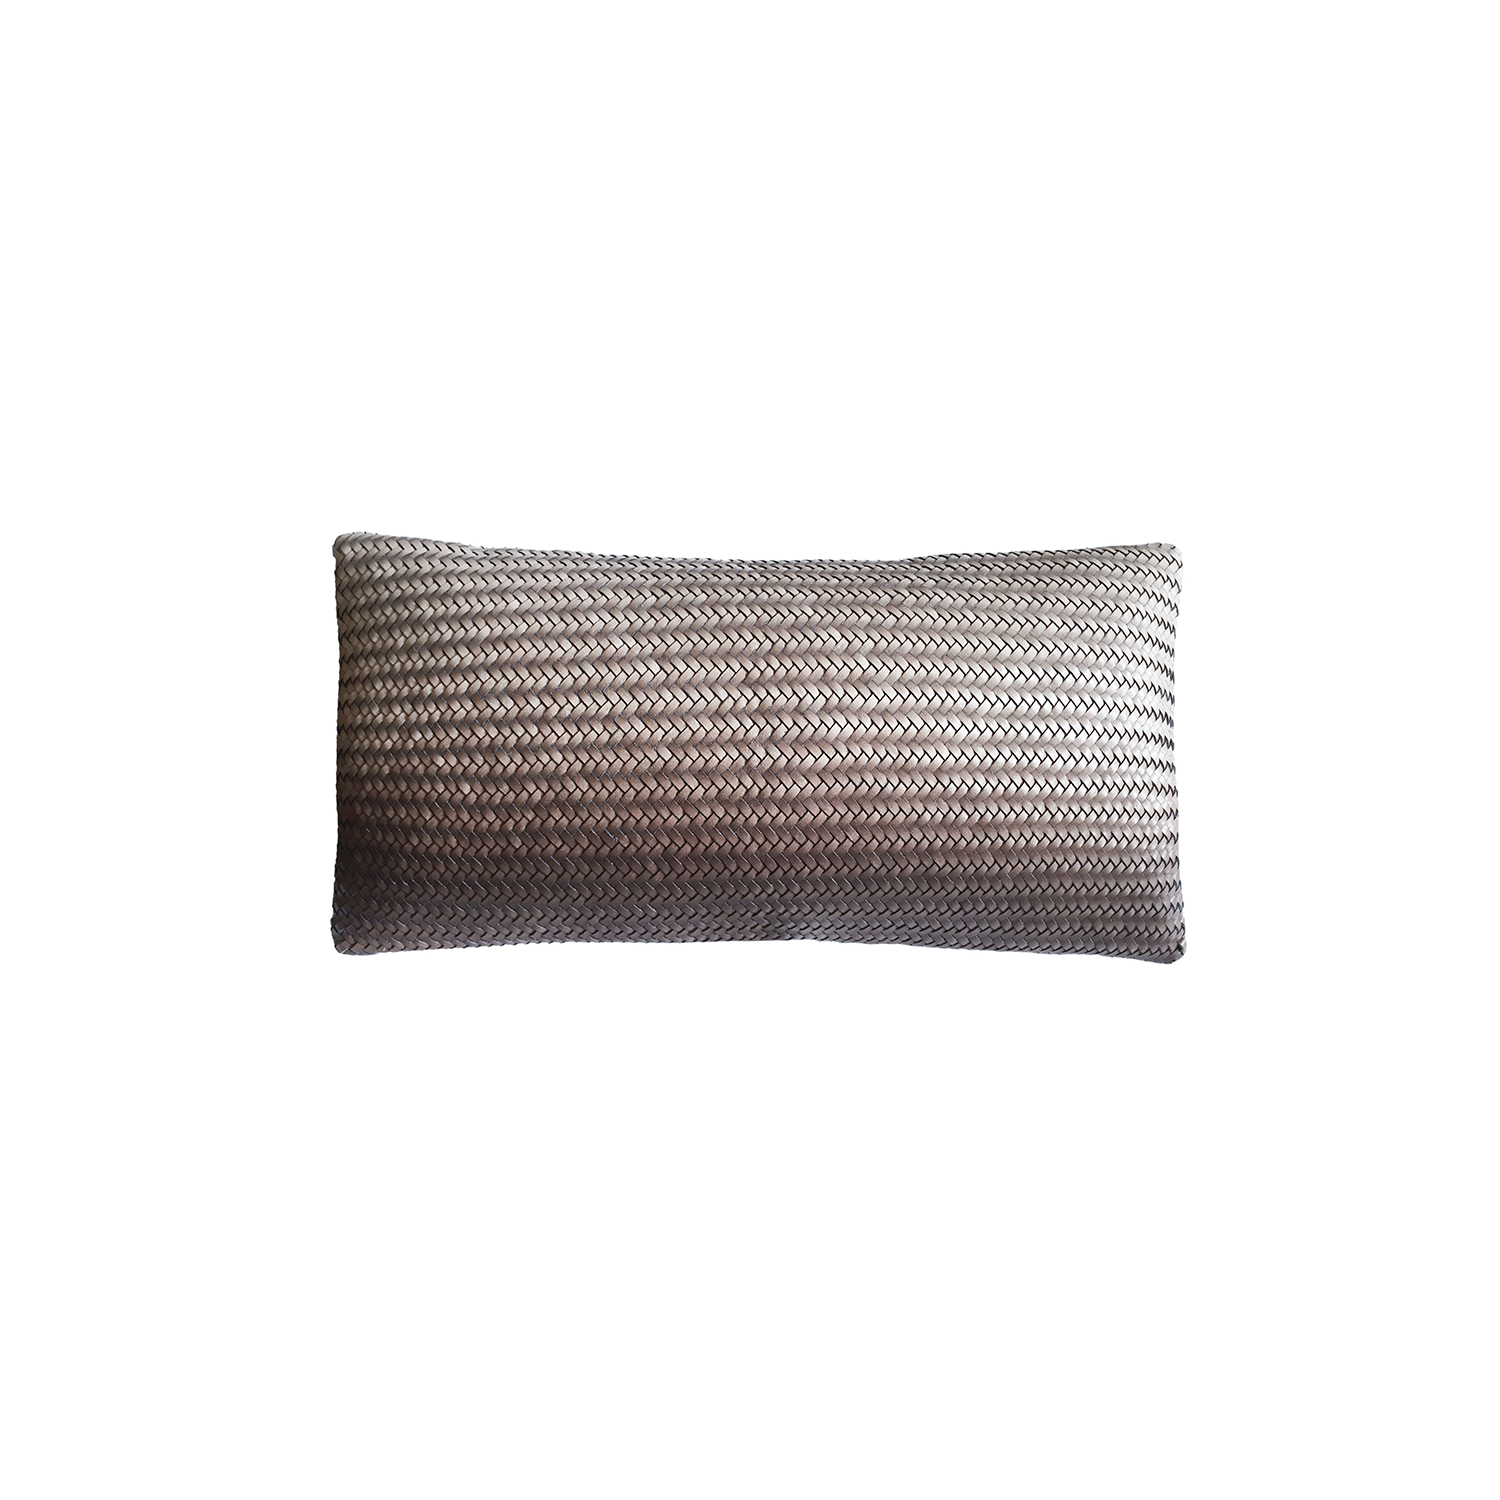 Tresse Degrade Hand Painted Leather Cushion Small - Having the leather as its main component, sometimes combined it with other materials, our pillows and throws in Tressé are used to embellish a variety of settings. They bring luxurious finishes and personality in the space and the furniture they accompany.   Tressé is the art of intertwining the leather. Our tressés are meticulously hand-woven by artisans in small ateliers. Each item crafted is therefore unique. It is an artisanal process that undertakes several stages of manufacturing, from the particular choice of the hide till the final product. And with each collection, the designers explore new patterns and techniques.  Please enquire for more information and see colour chart for reference. | Matter of Stuff